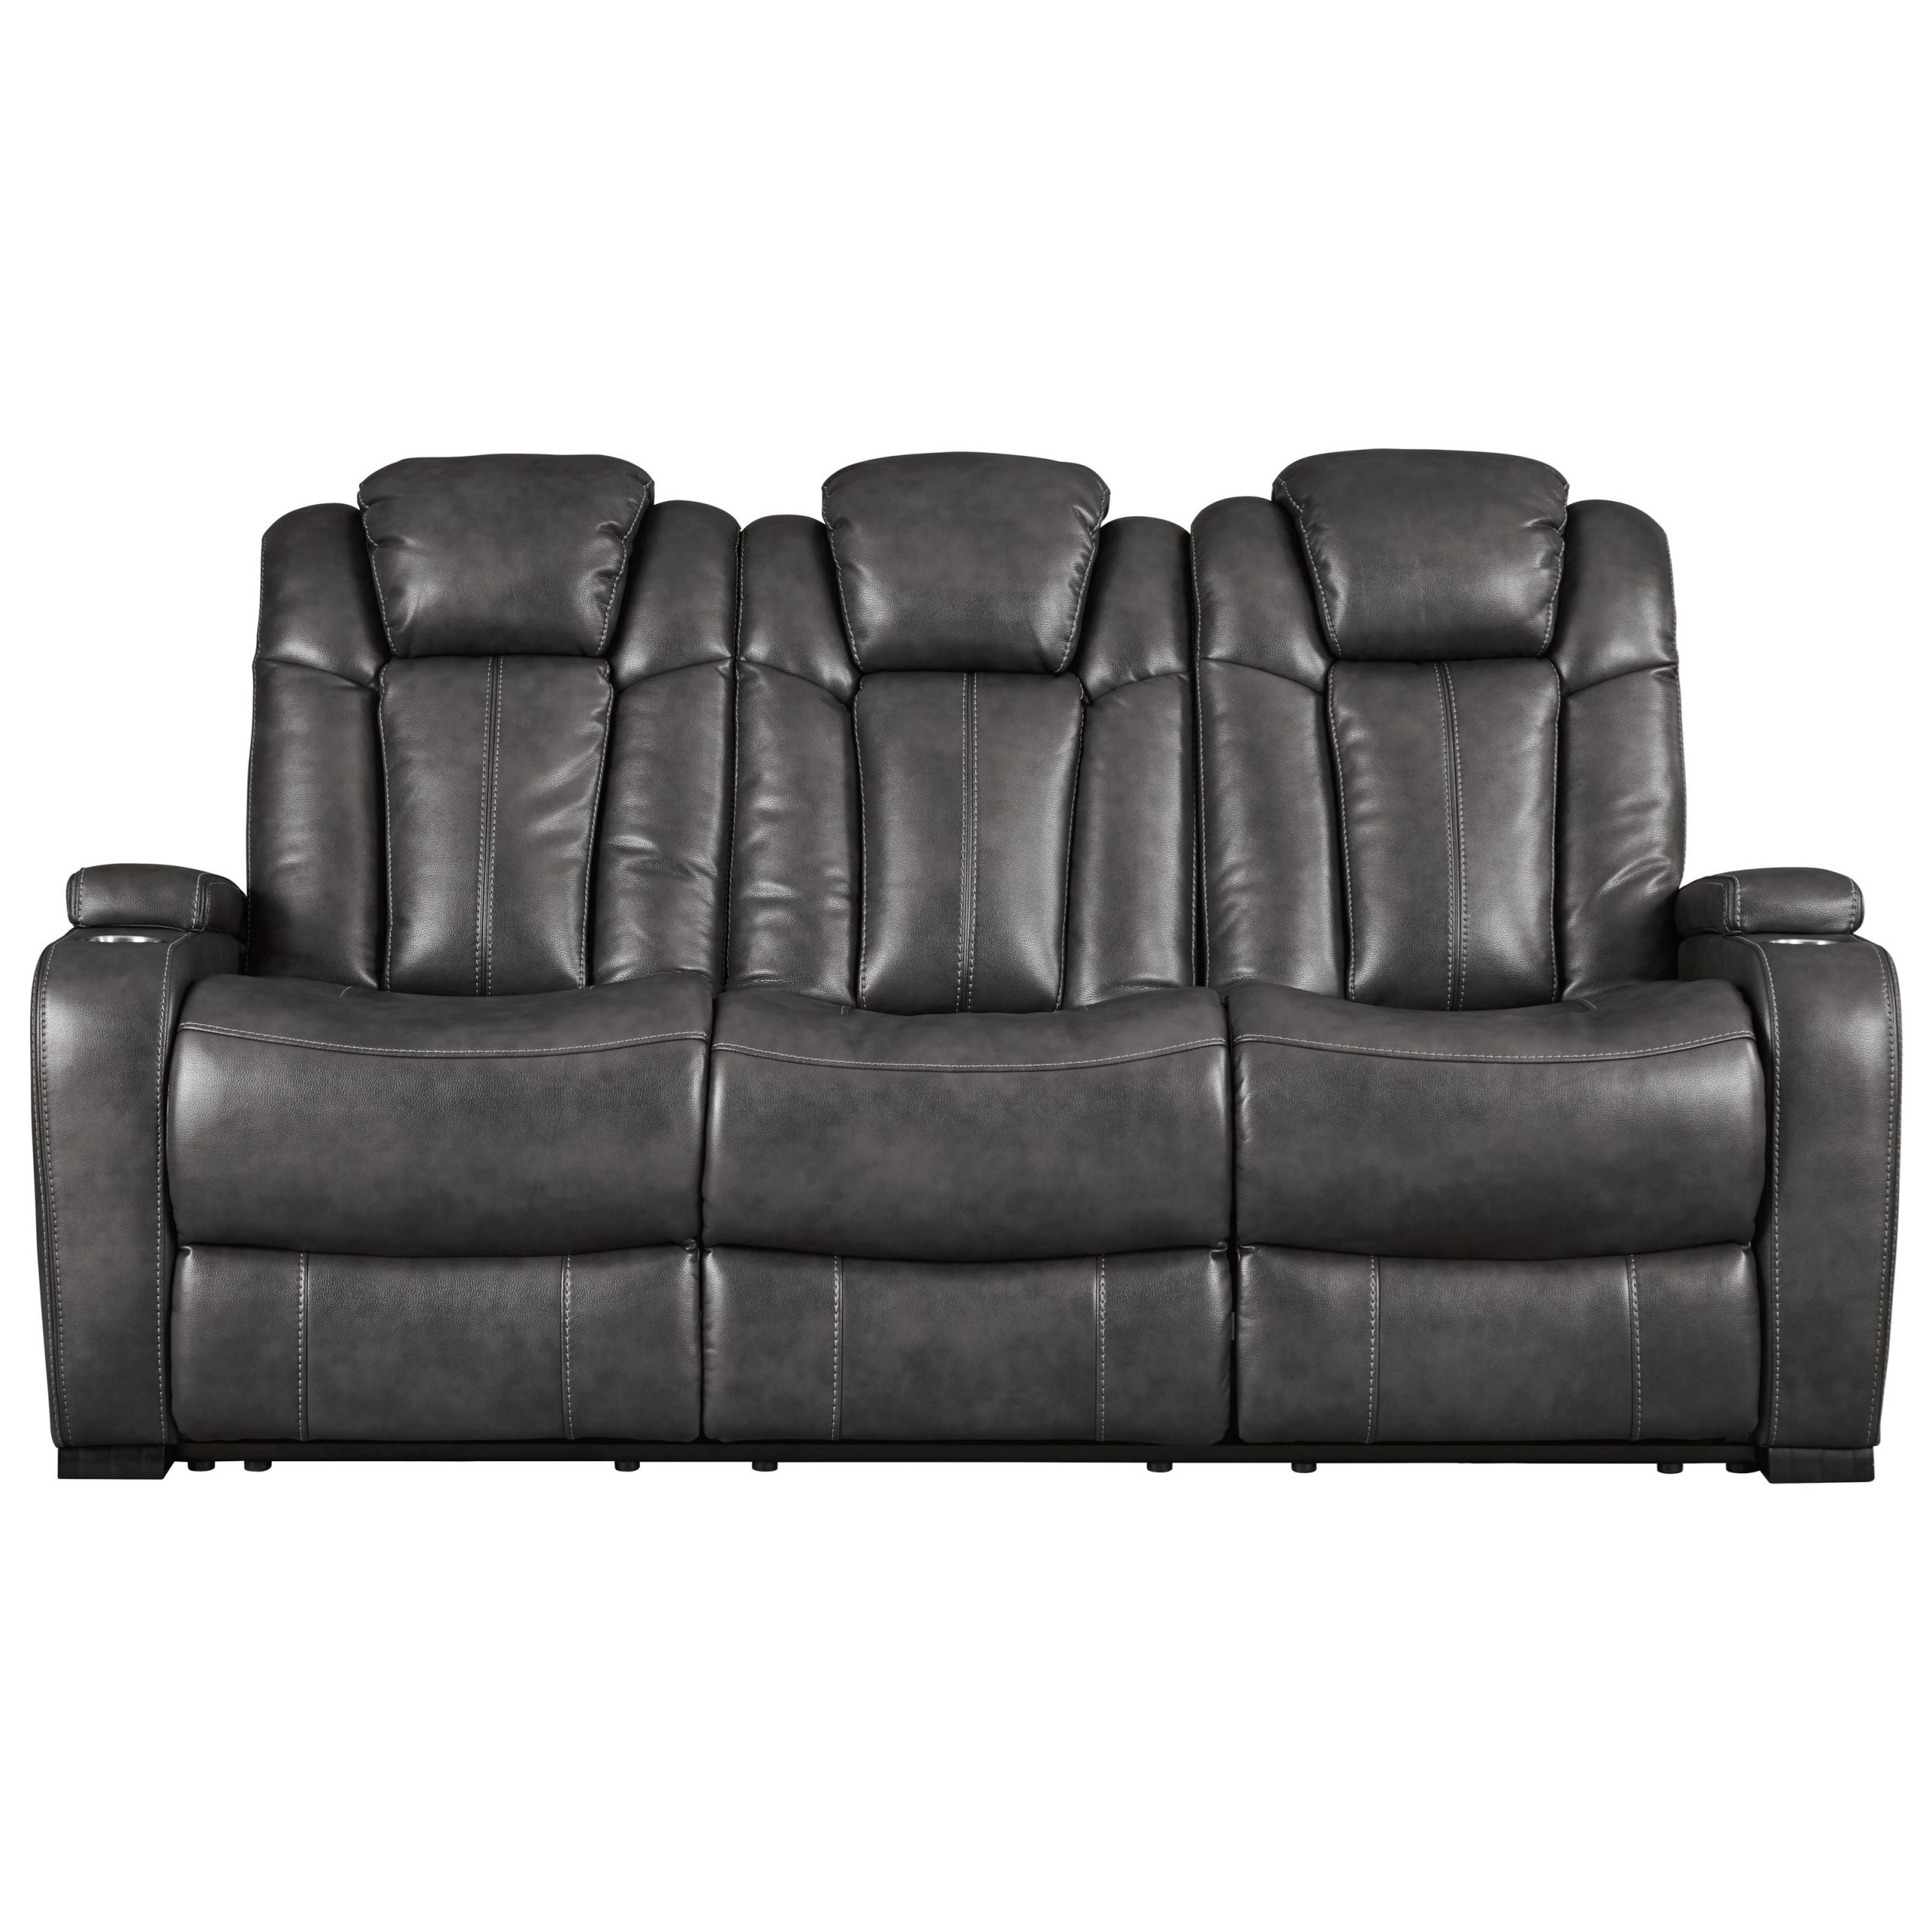 Signature Designashley Turbulance Contemporary Faux Intended For Power Reclining Sofas (View 1 of 15)